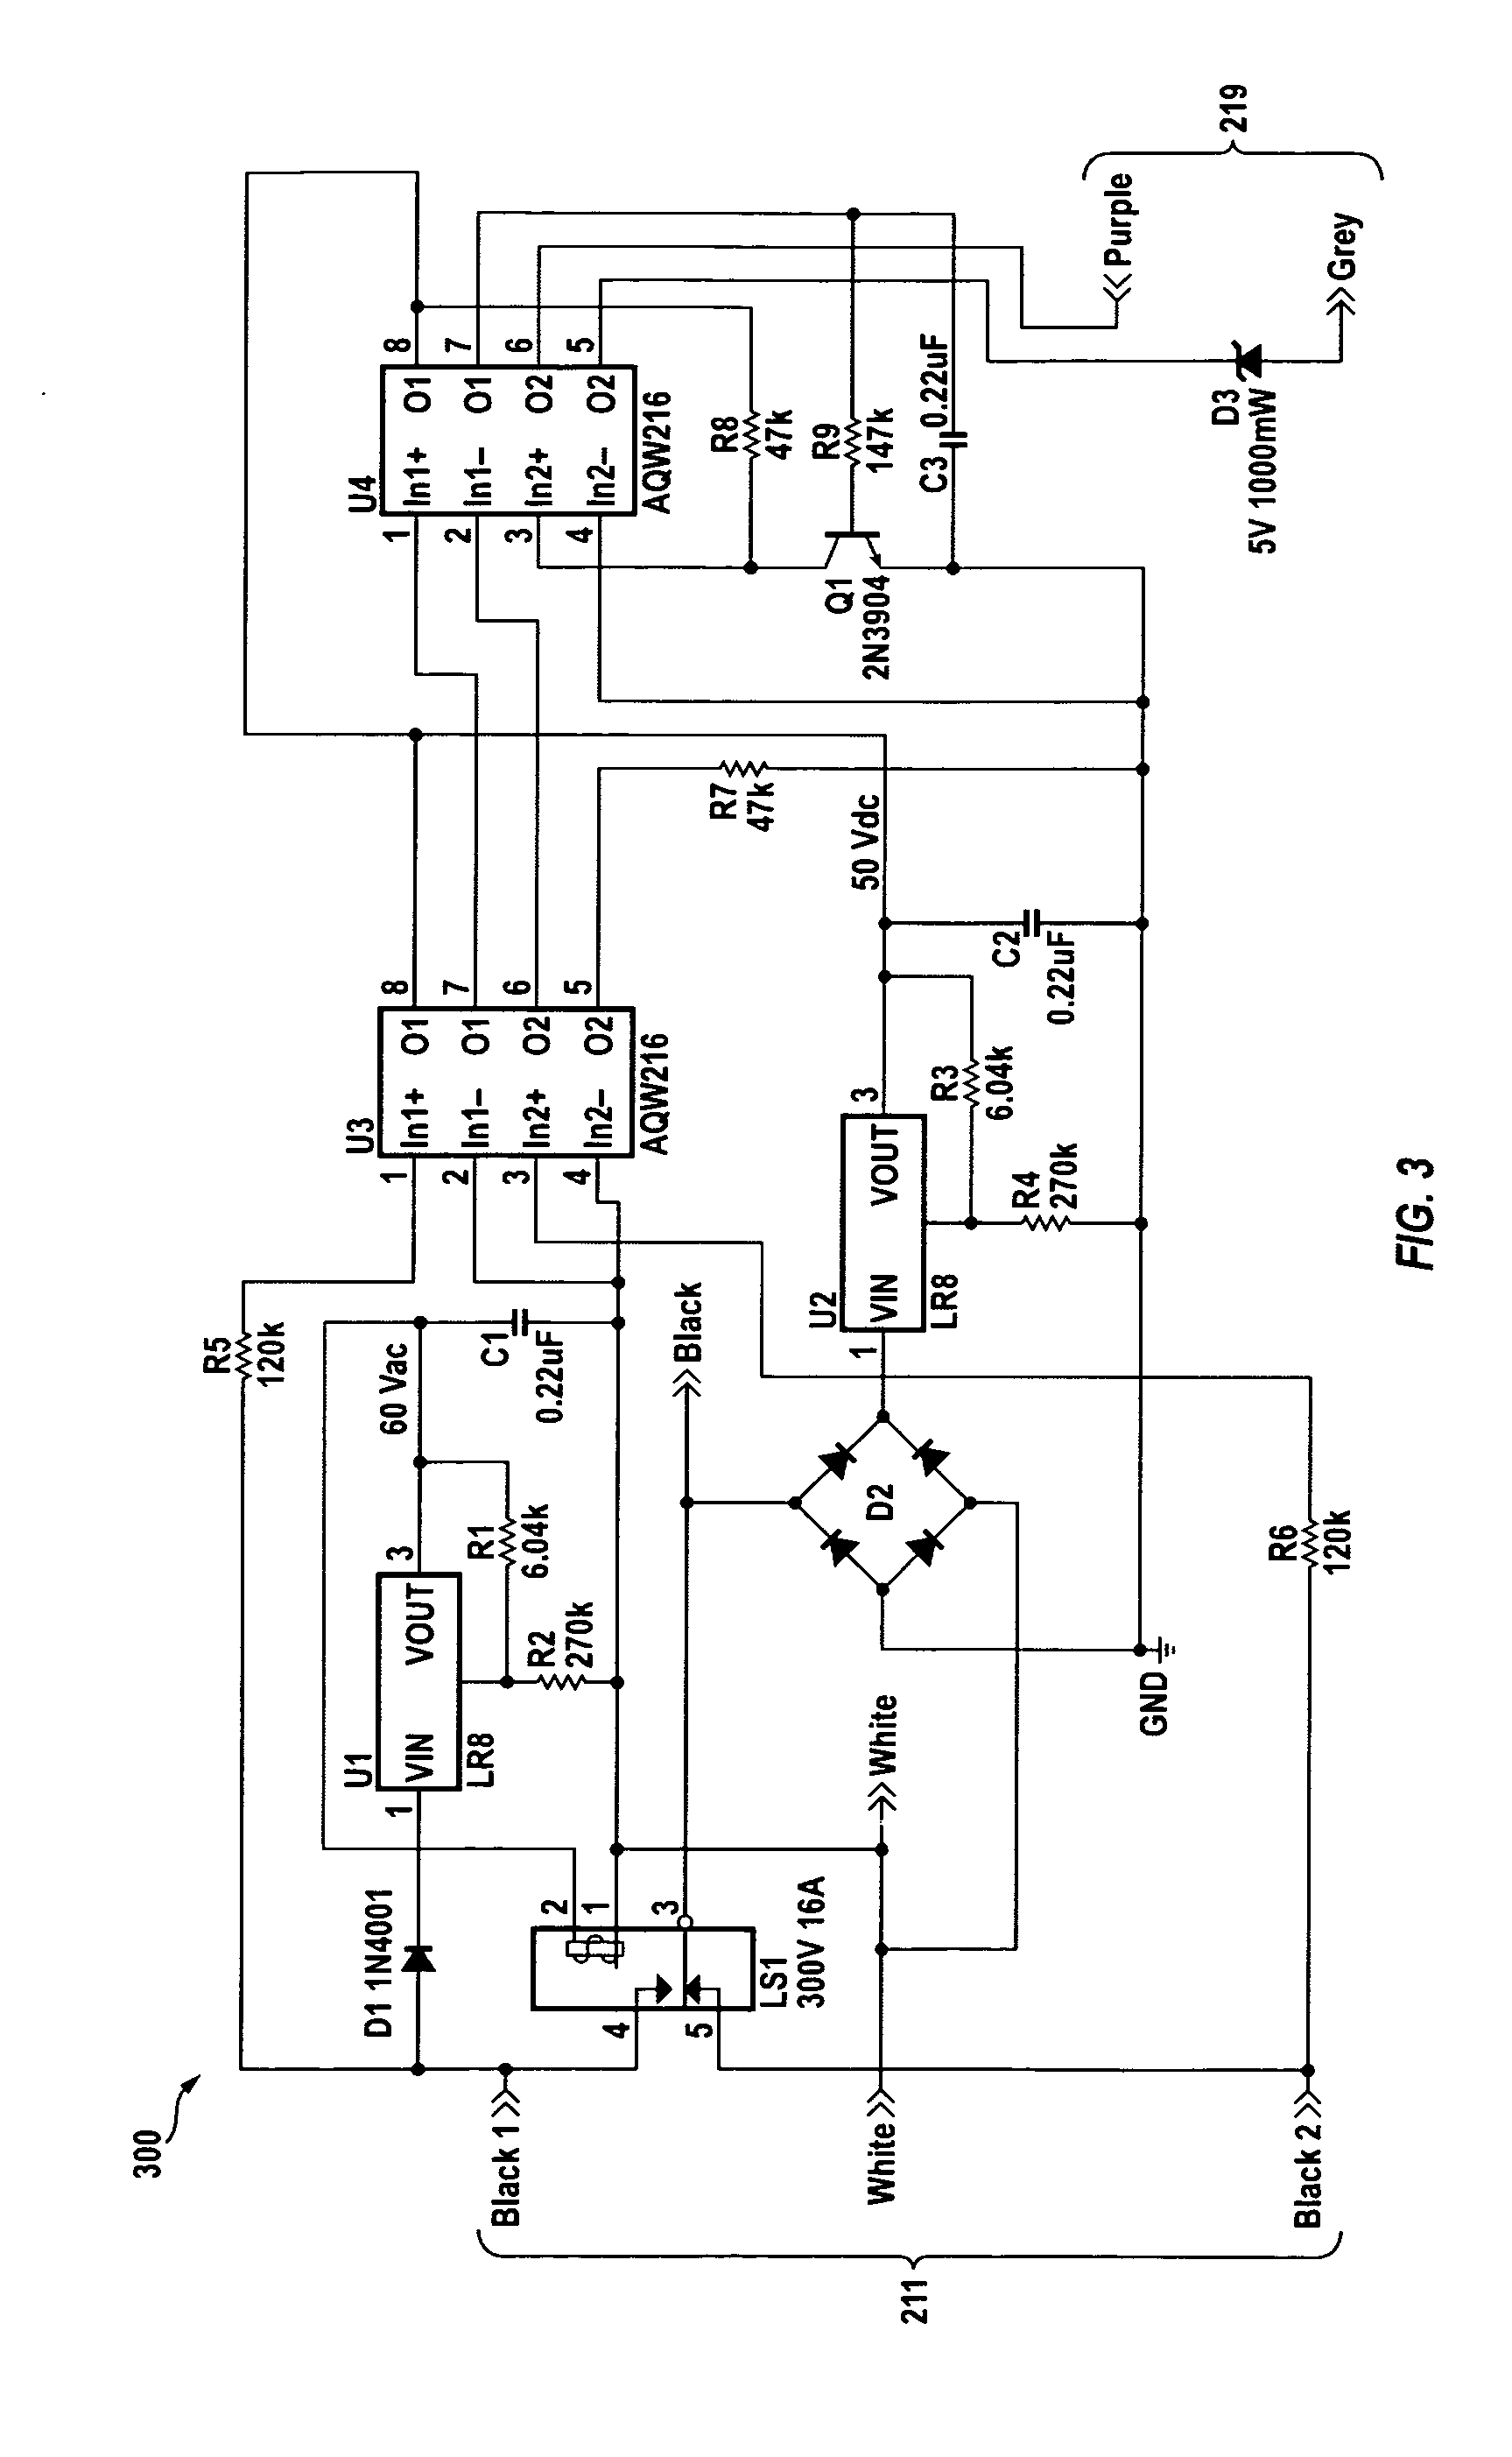 Patent Us20130119887 Bi Level Dimming Controller For Led